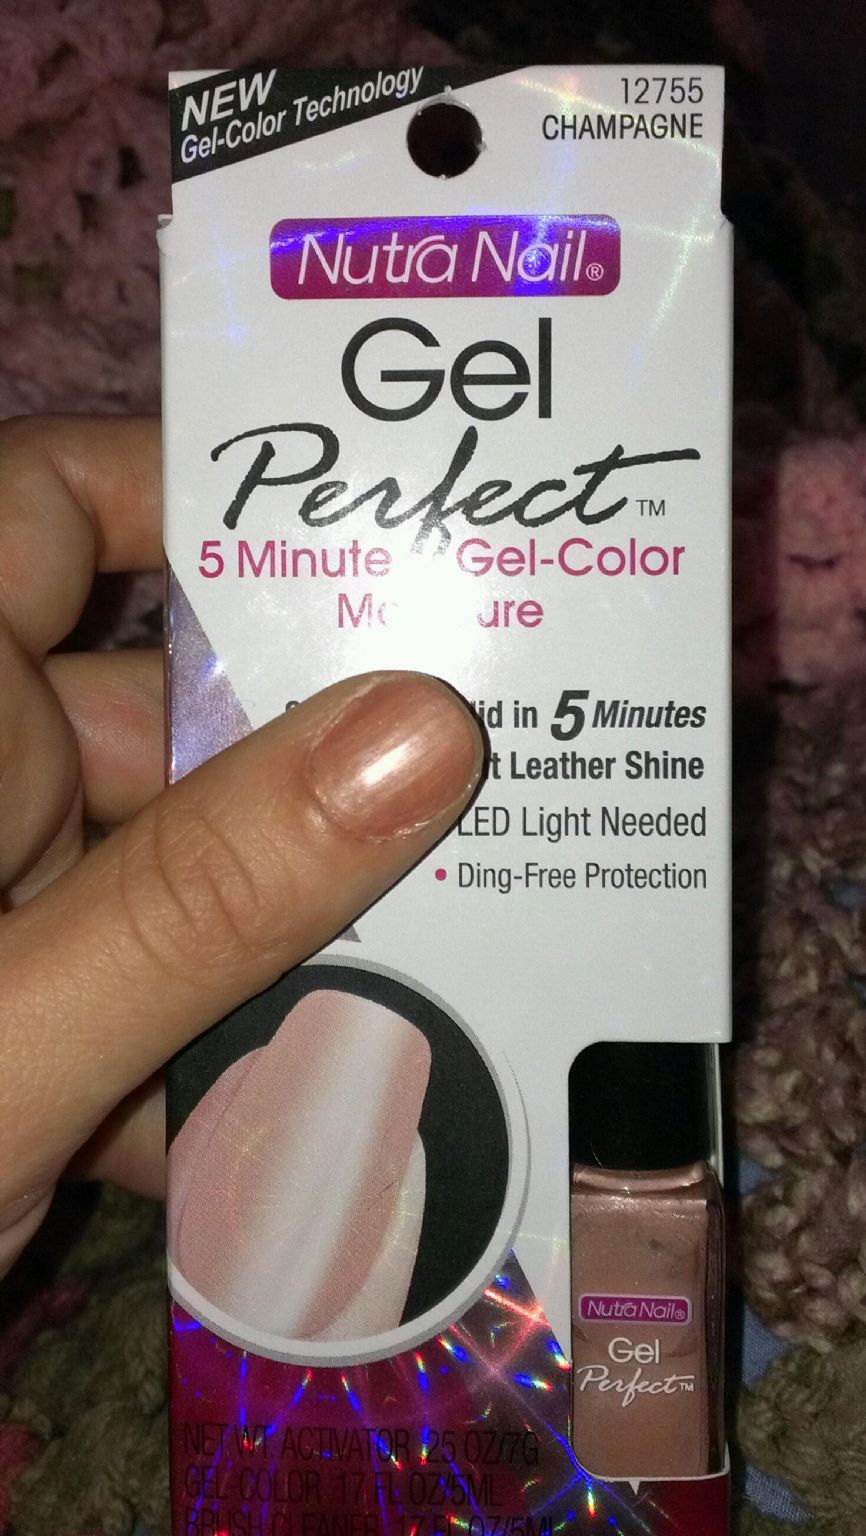 Nutra Nail Gel Perfect UV Free Gel Color reviews, photos - Makeupalley